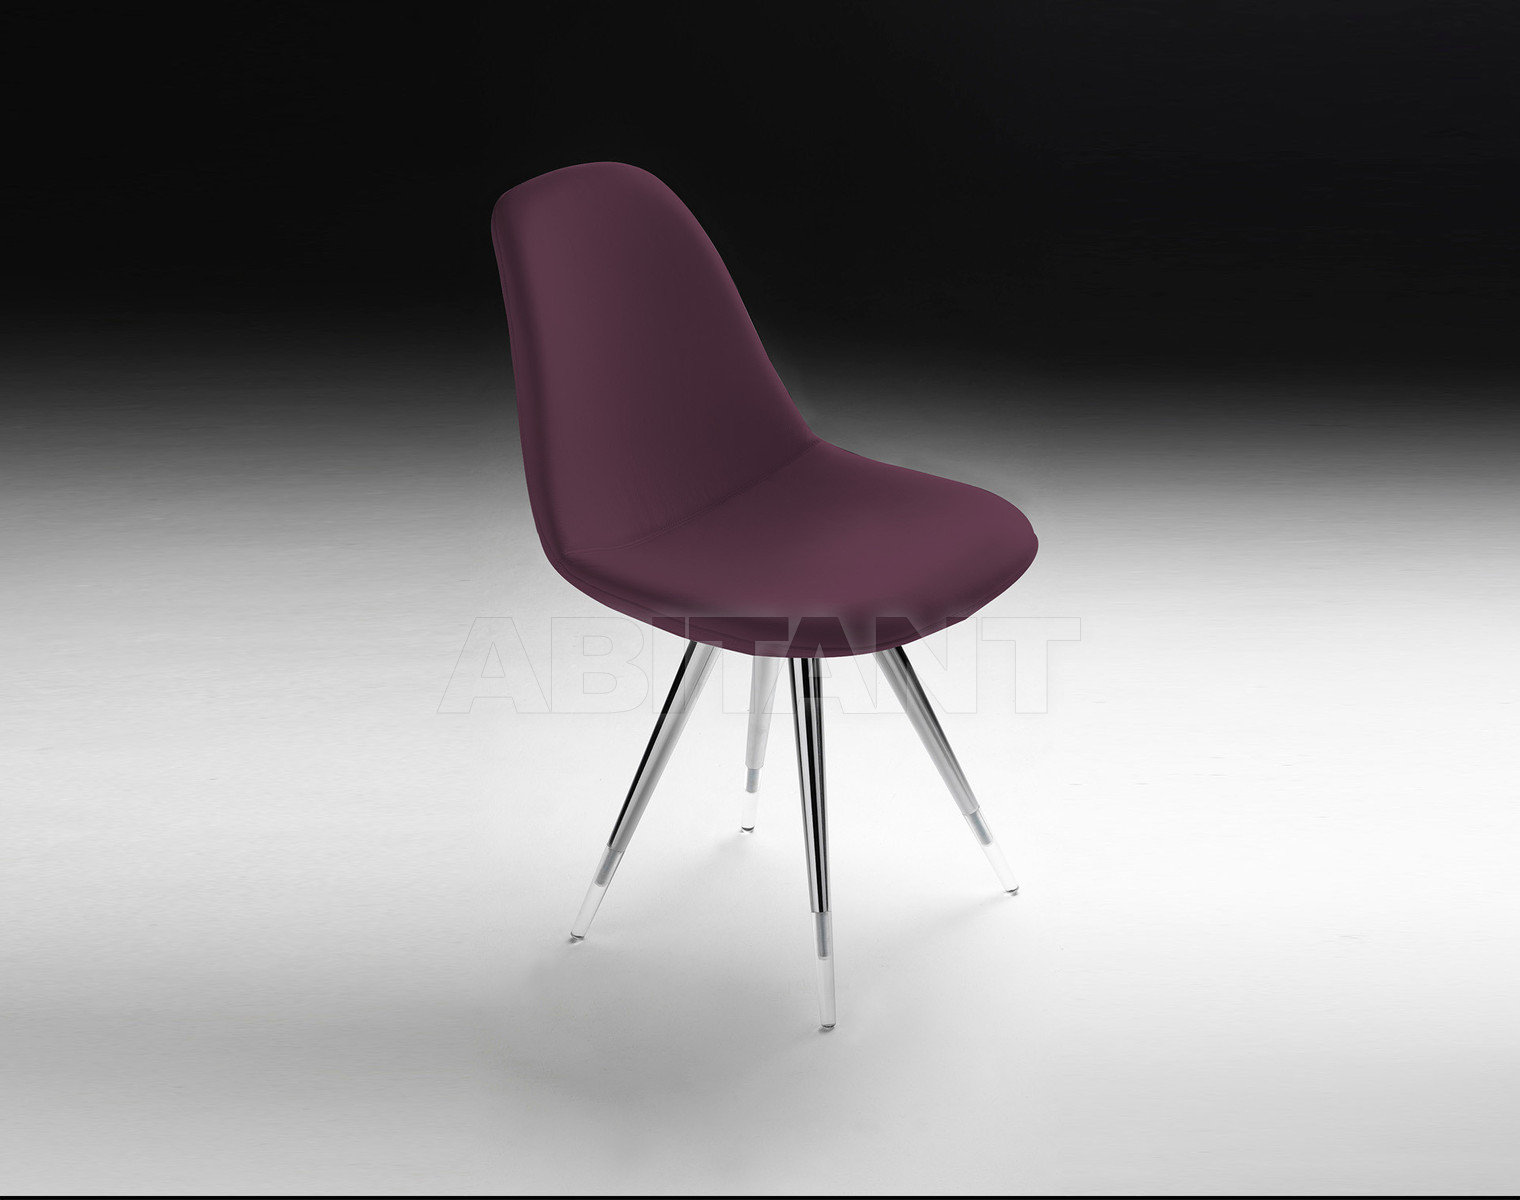 Купить Стул Kubikoff Gino Lemson & Ruud Bos Angel'POP'Chair' 13